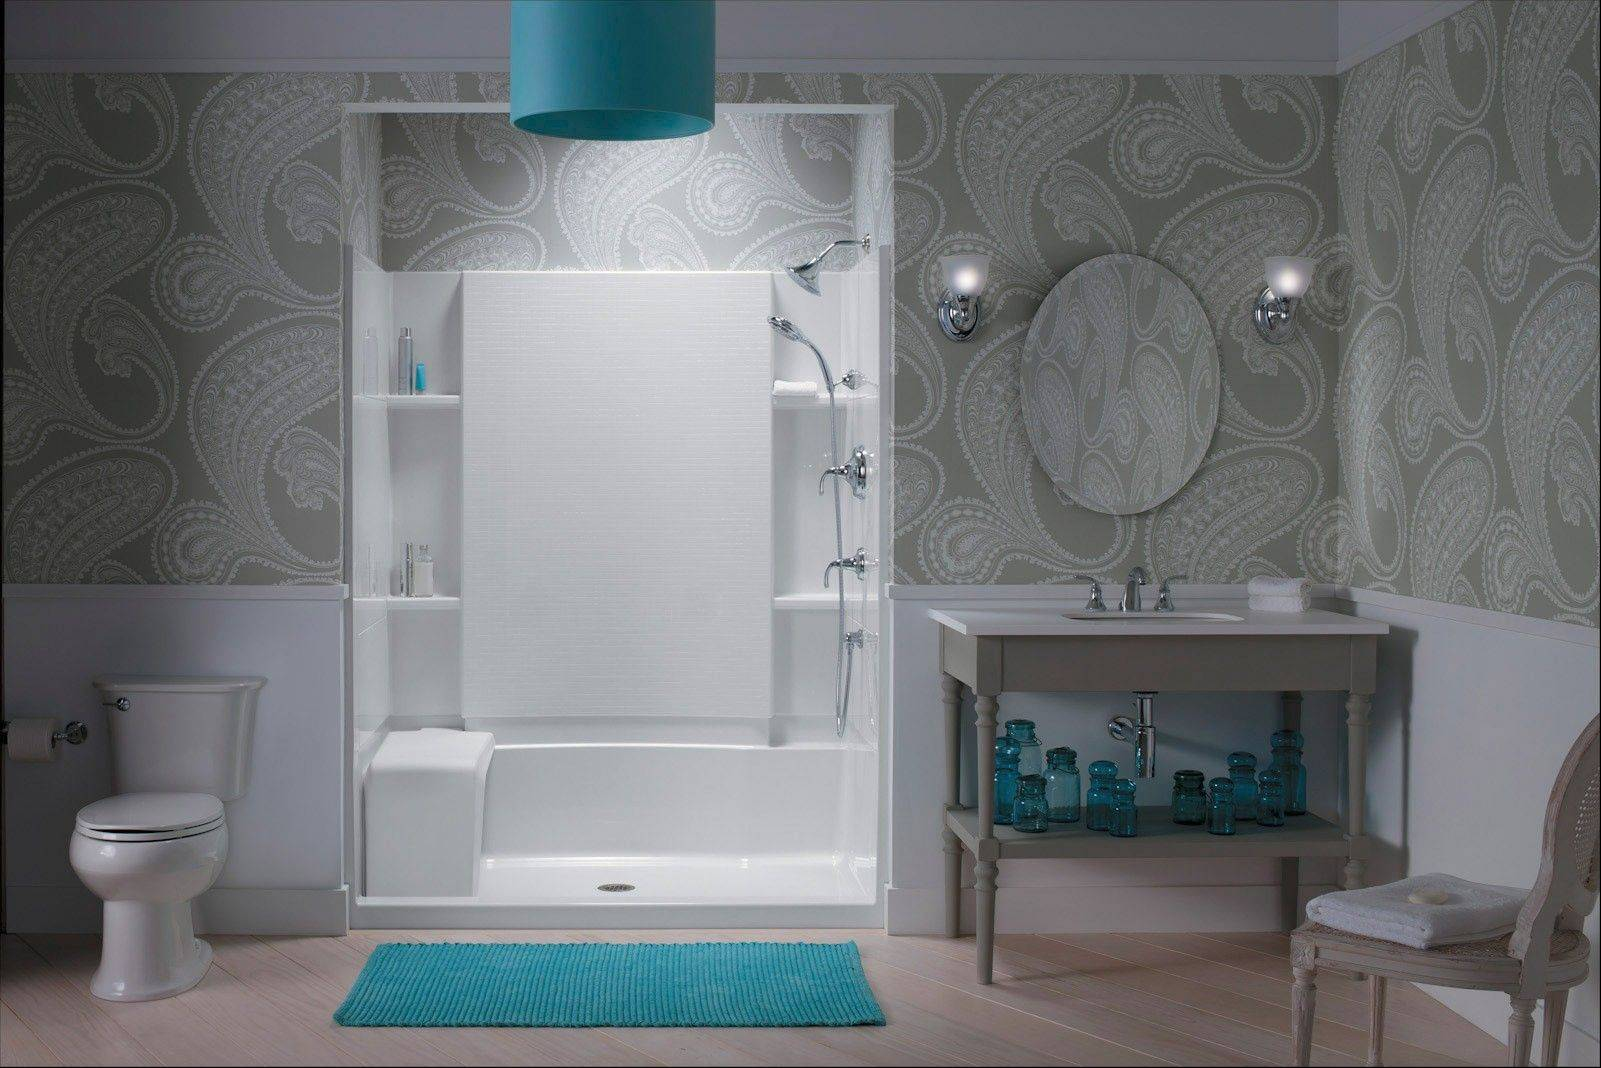 When it comes to replacing tub and shower components, be sure to work with a licensed and insured contractor in your area who can help suggest the best option for your particular bathroom.